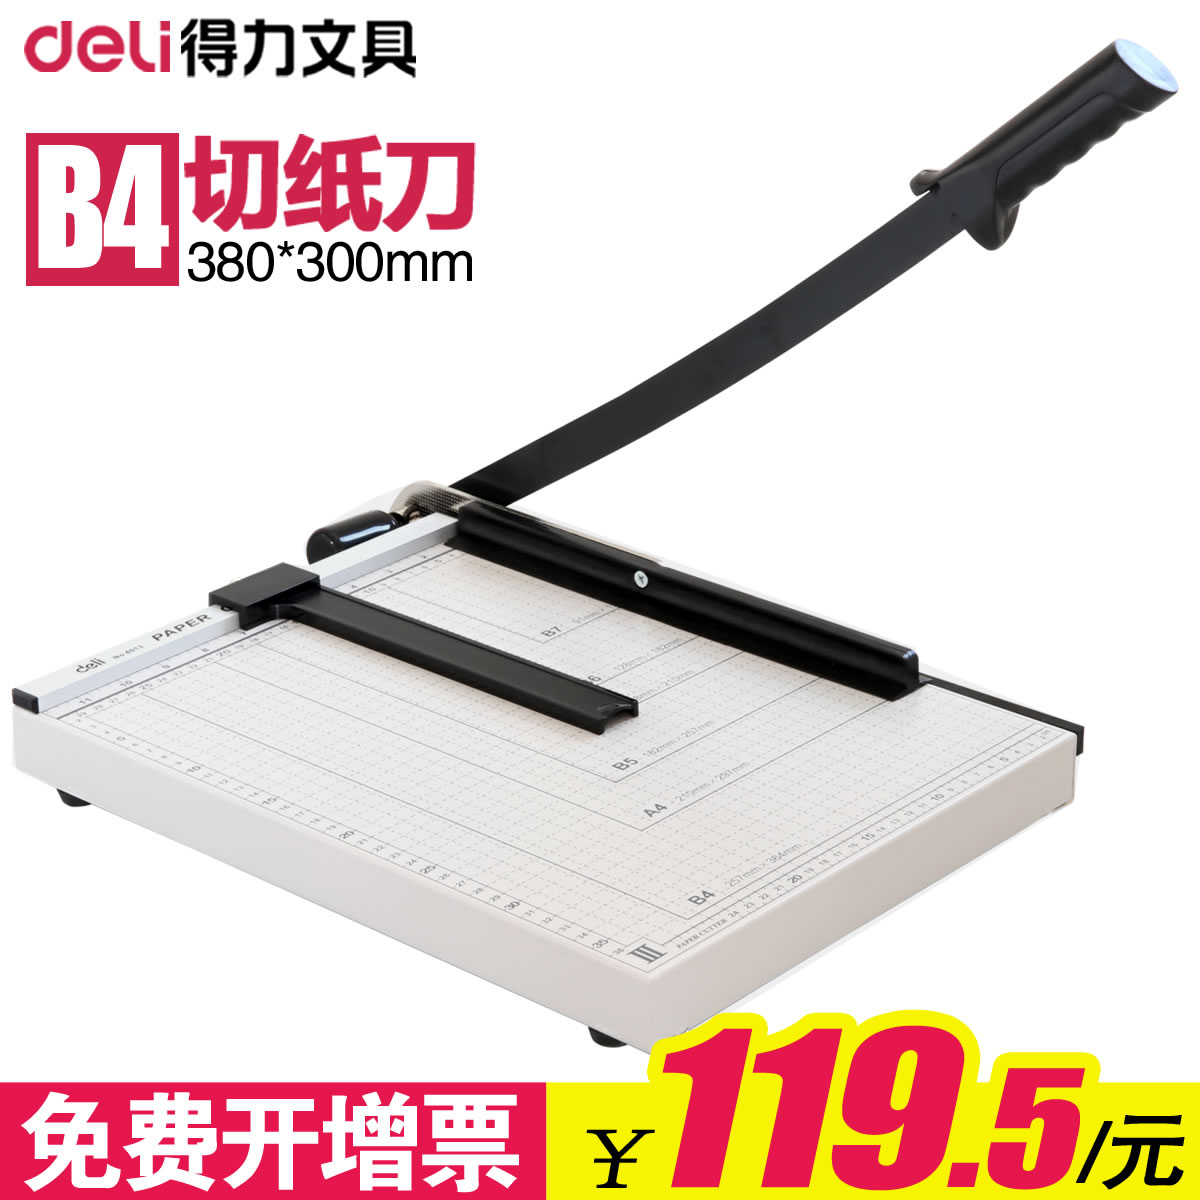 Deli deli knife cutter 8013 photo photo paper cutter steel cutter cutter manual paper cutter b4 paper cutting machine Specials